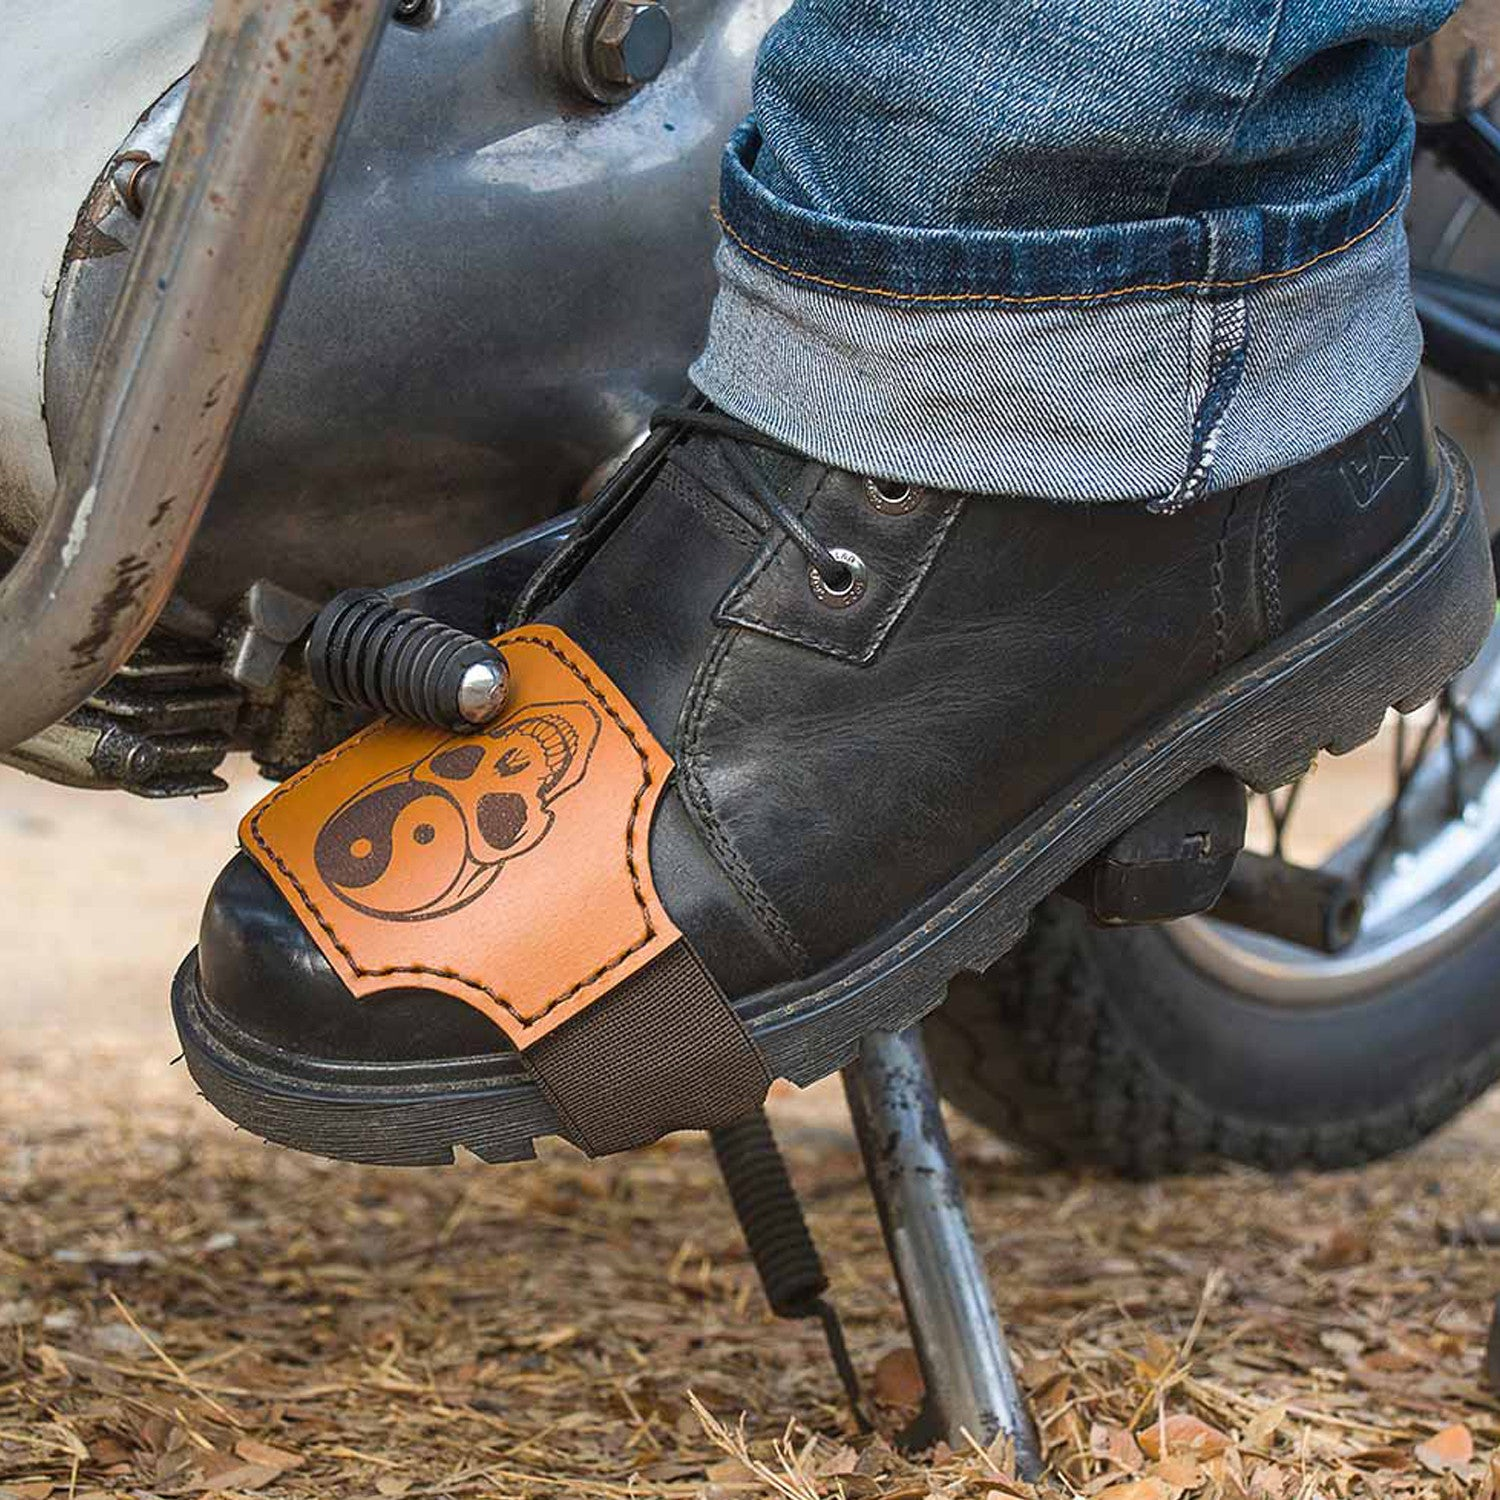 Biker Collection - Boot protector Strap - Two Horns